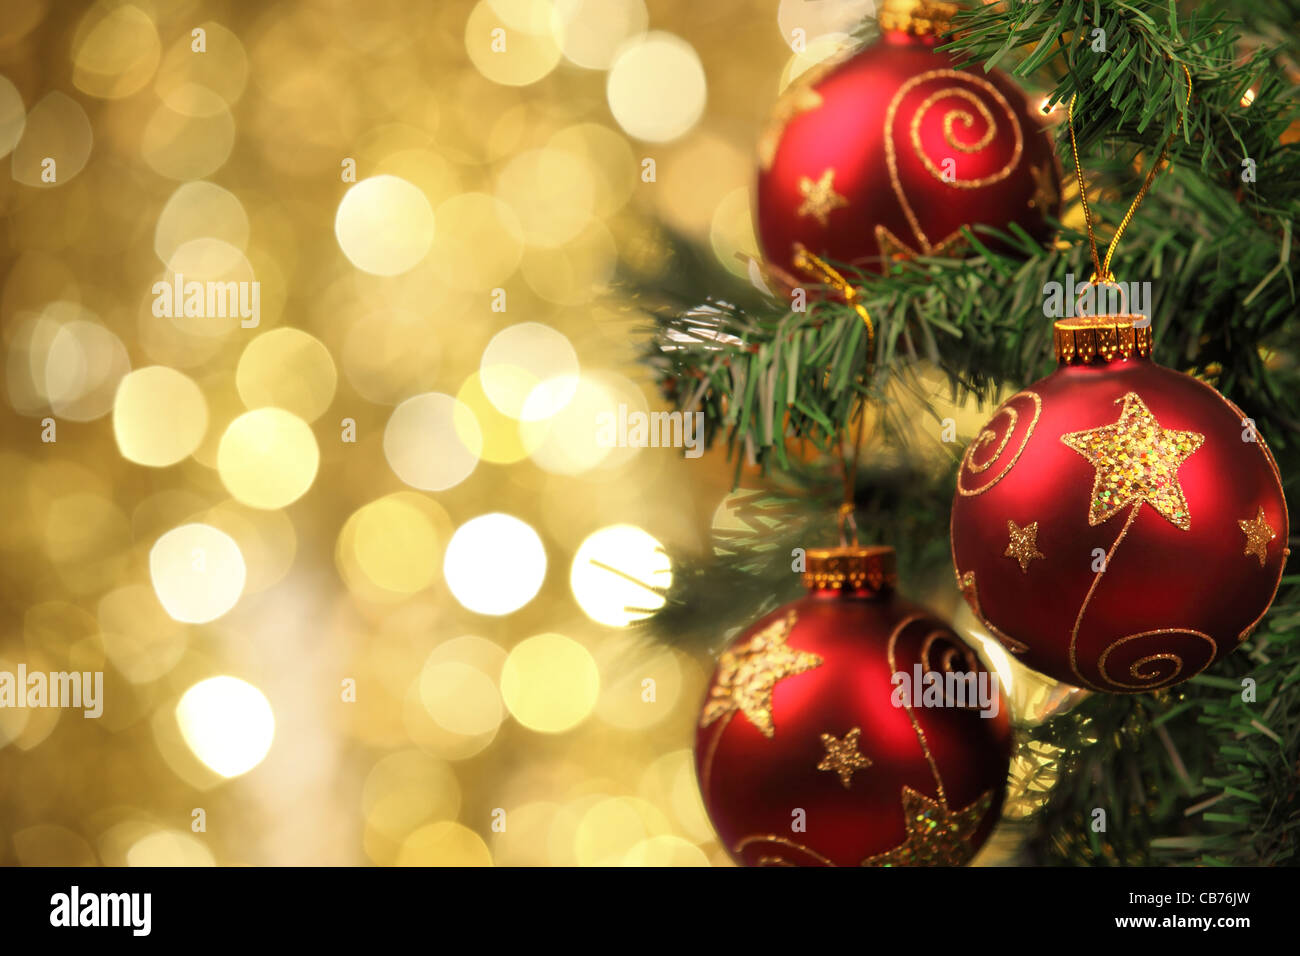 Closeup of Christmas-tree decorations. - Stock Image